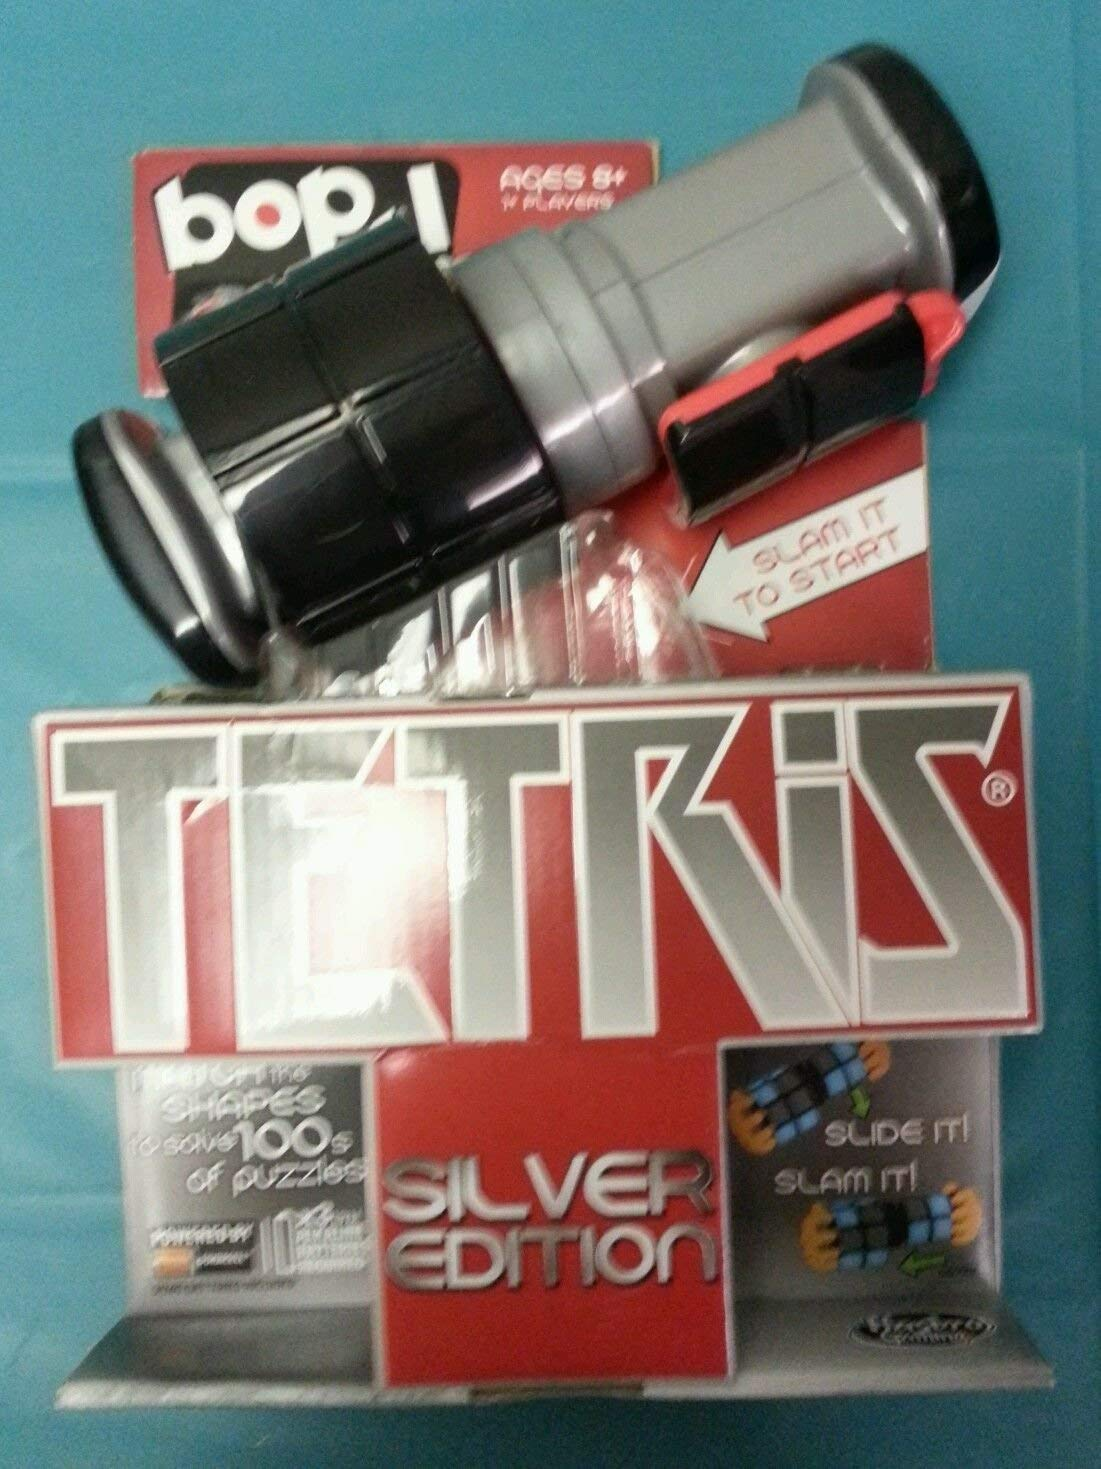 Bop It  Tetris Game  Exclusive Silber Edition by Hasbro